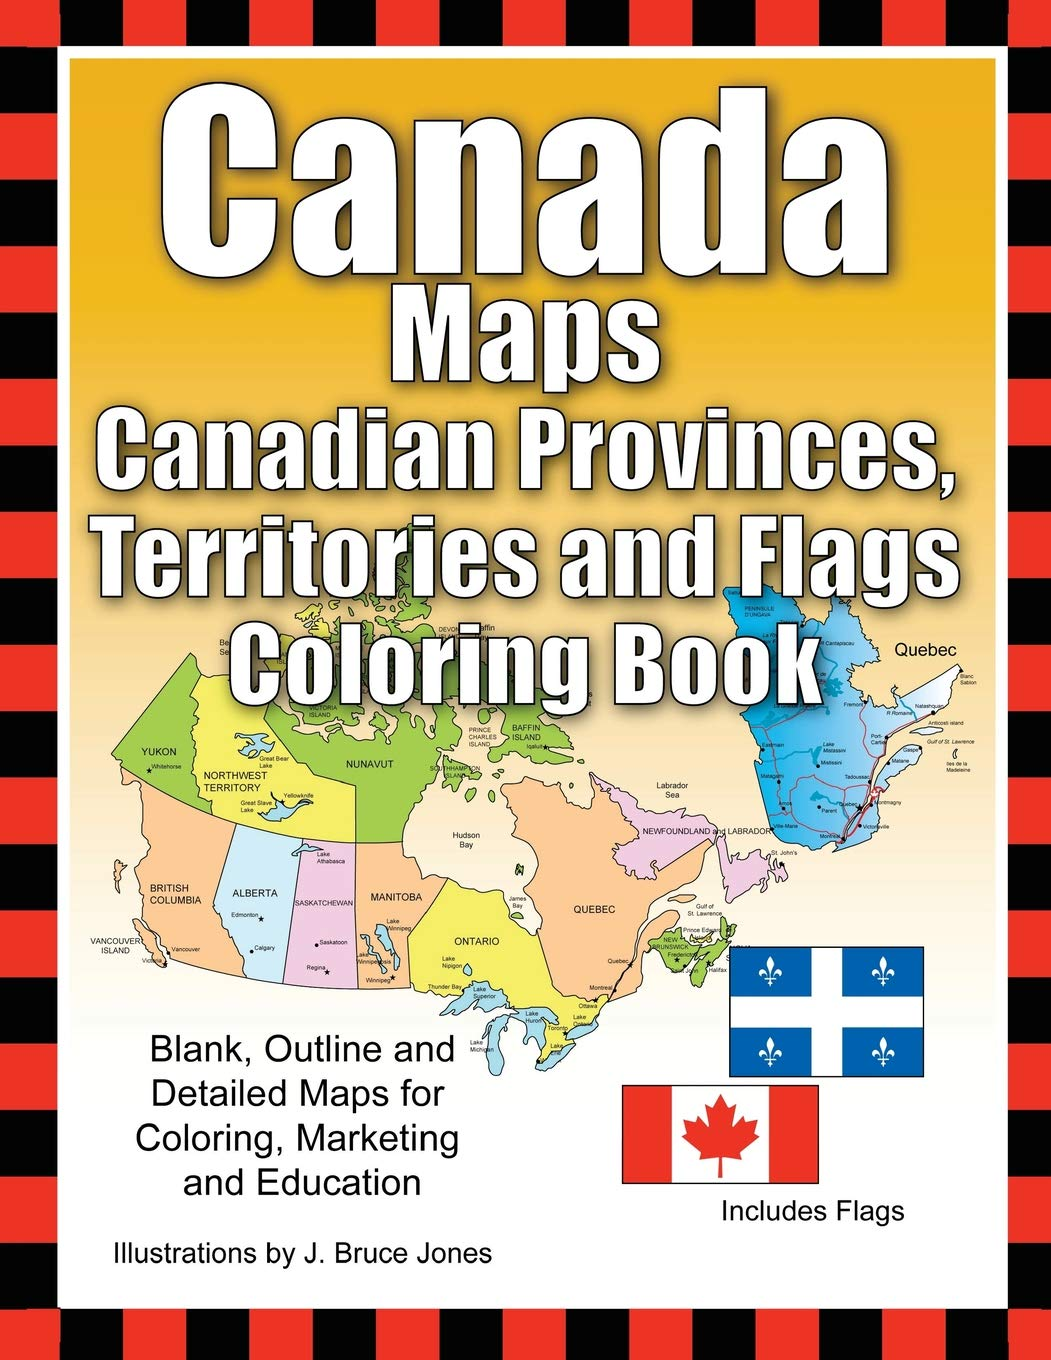 Amazon.com: Canada Maps, Canadian Provinces, Territories and Flags ...